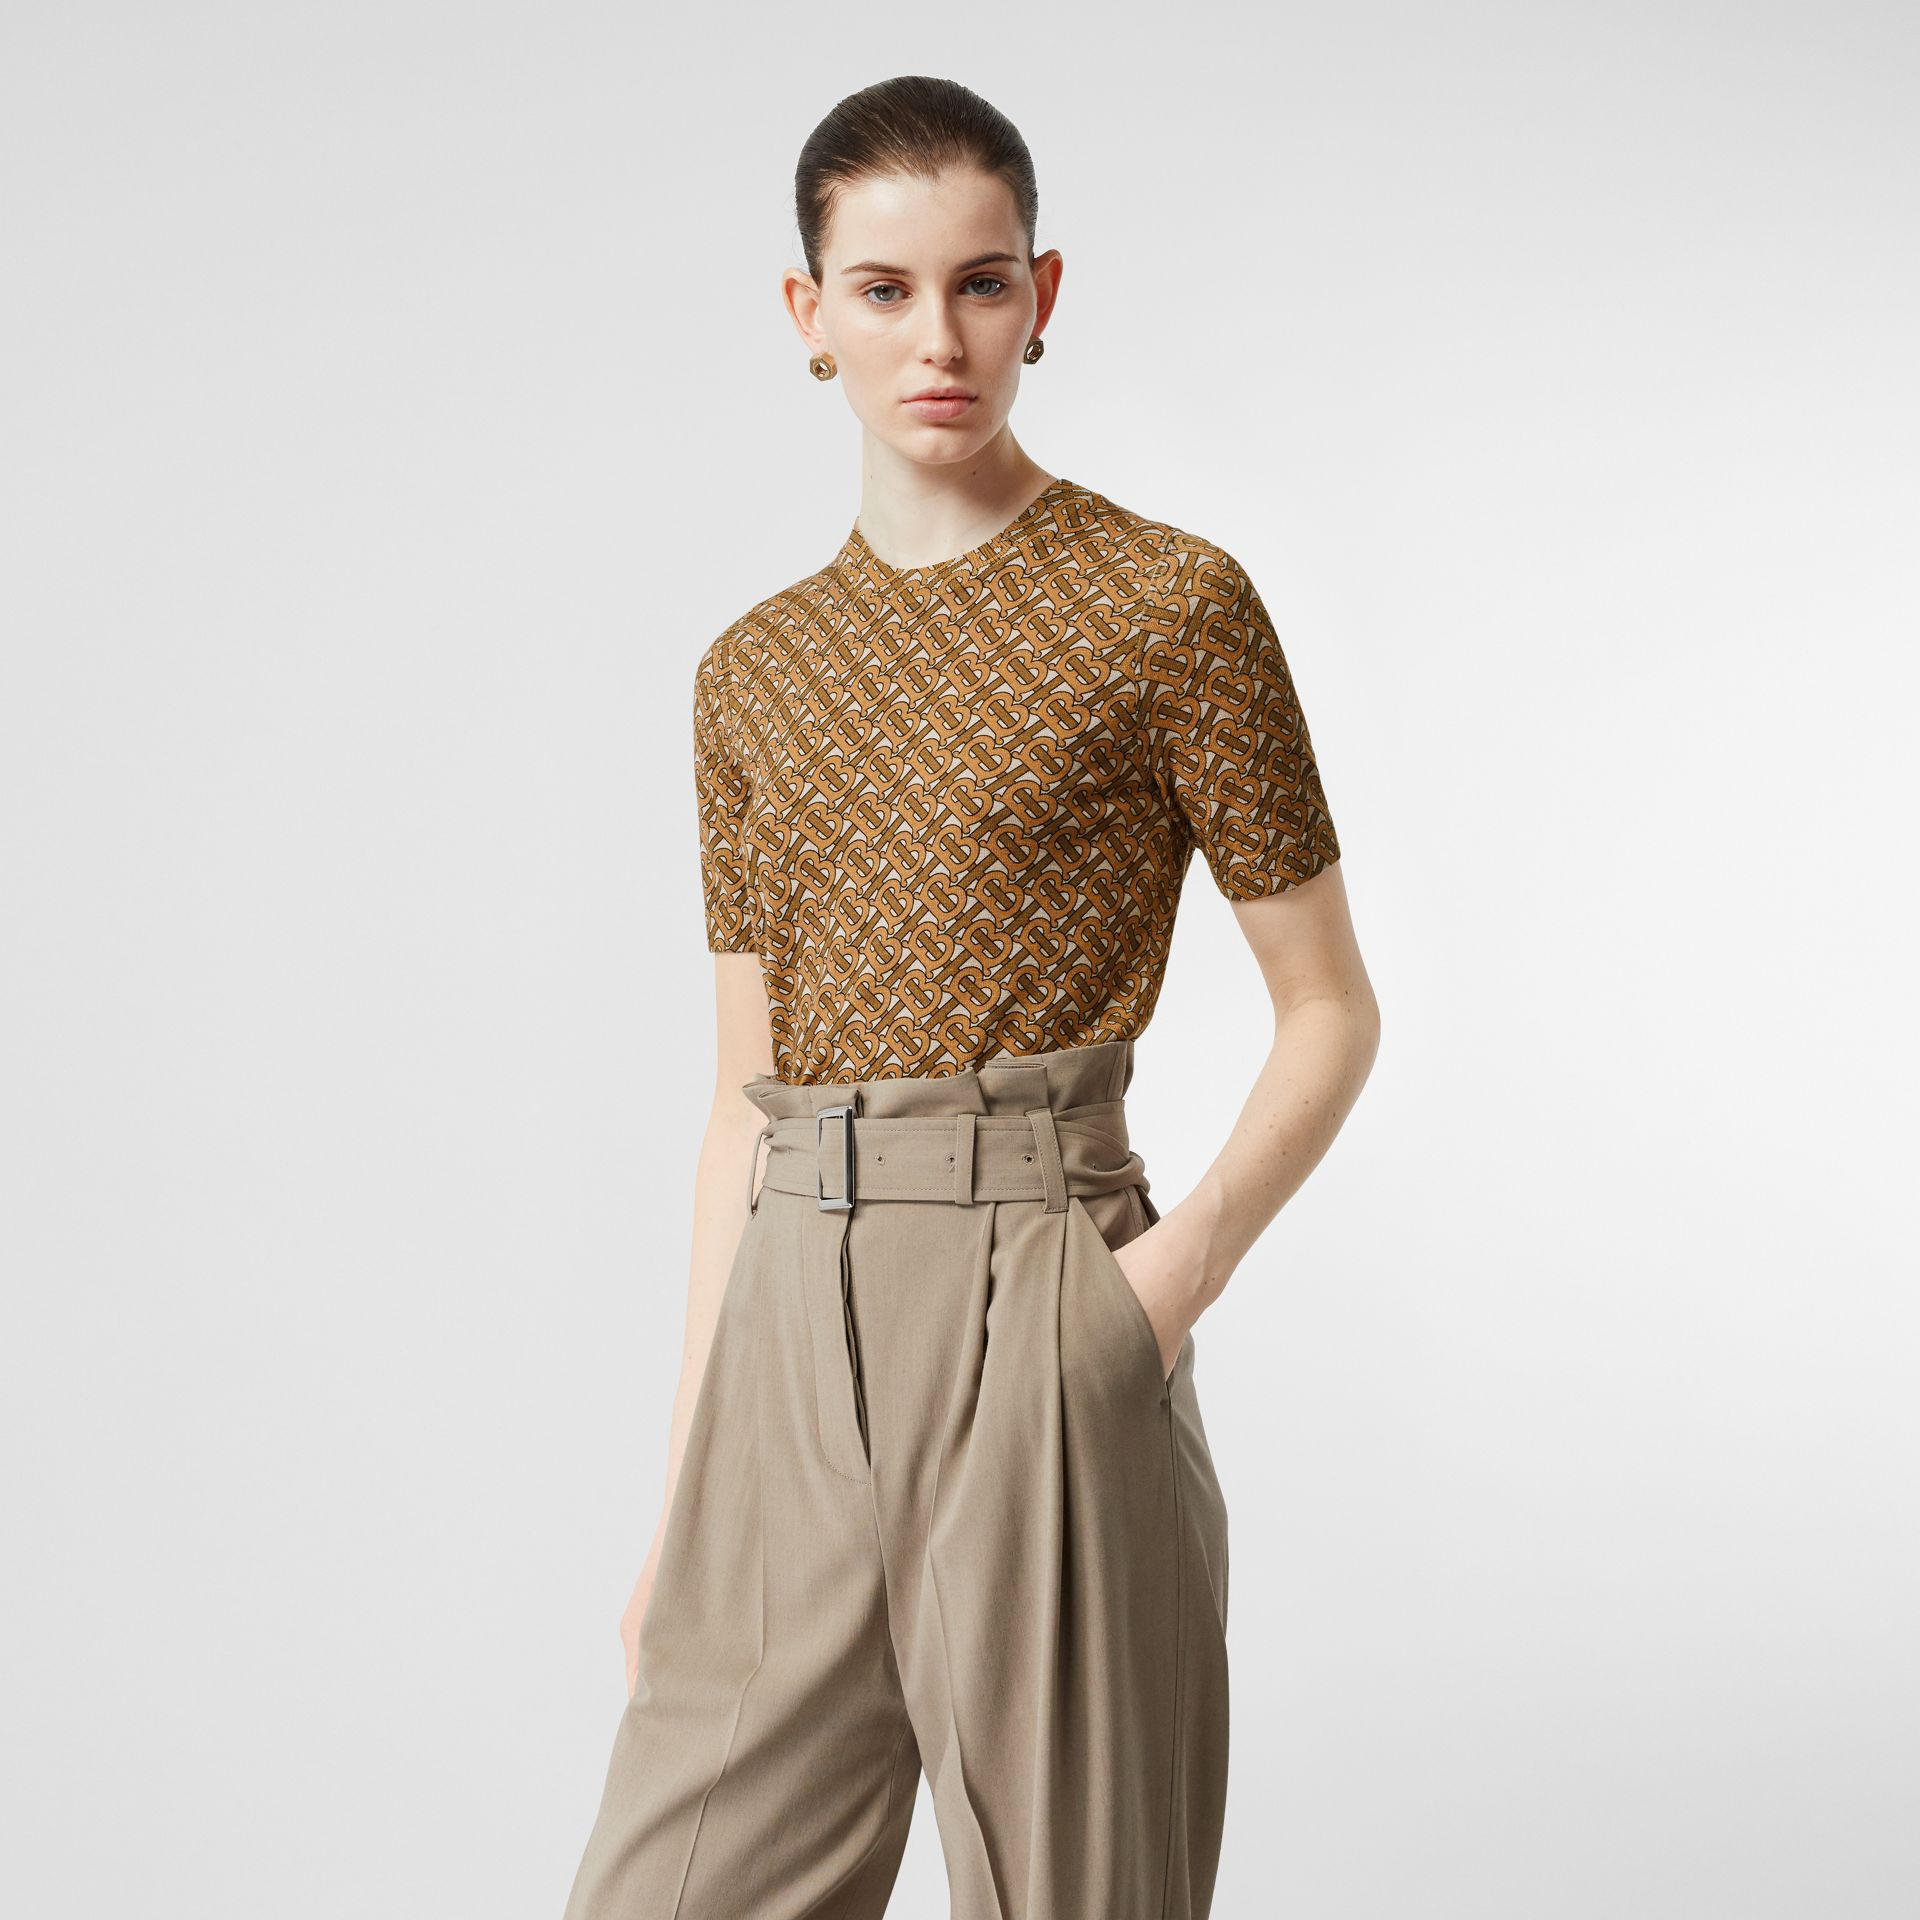 Monogram Print Merino Wool Top in Beige - Women | Burberry United Kingdom - gallery image 4